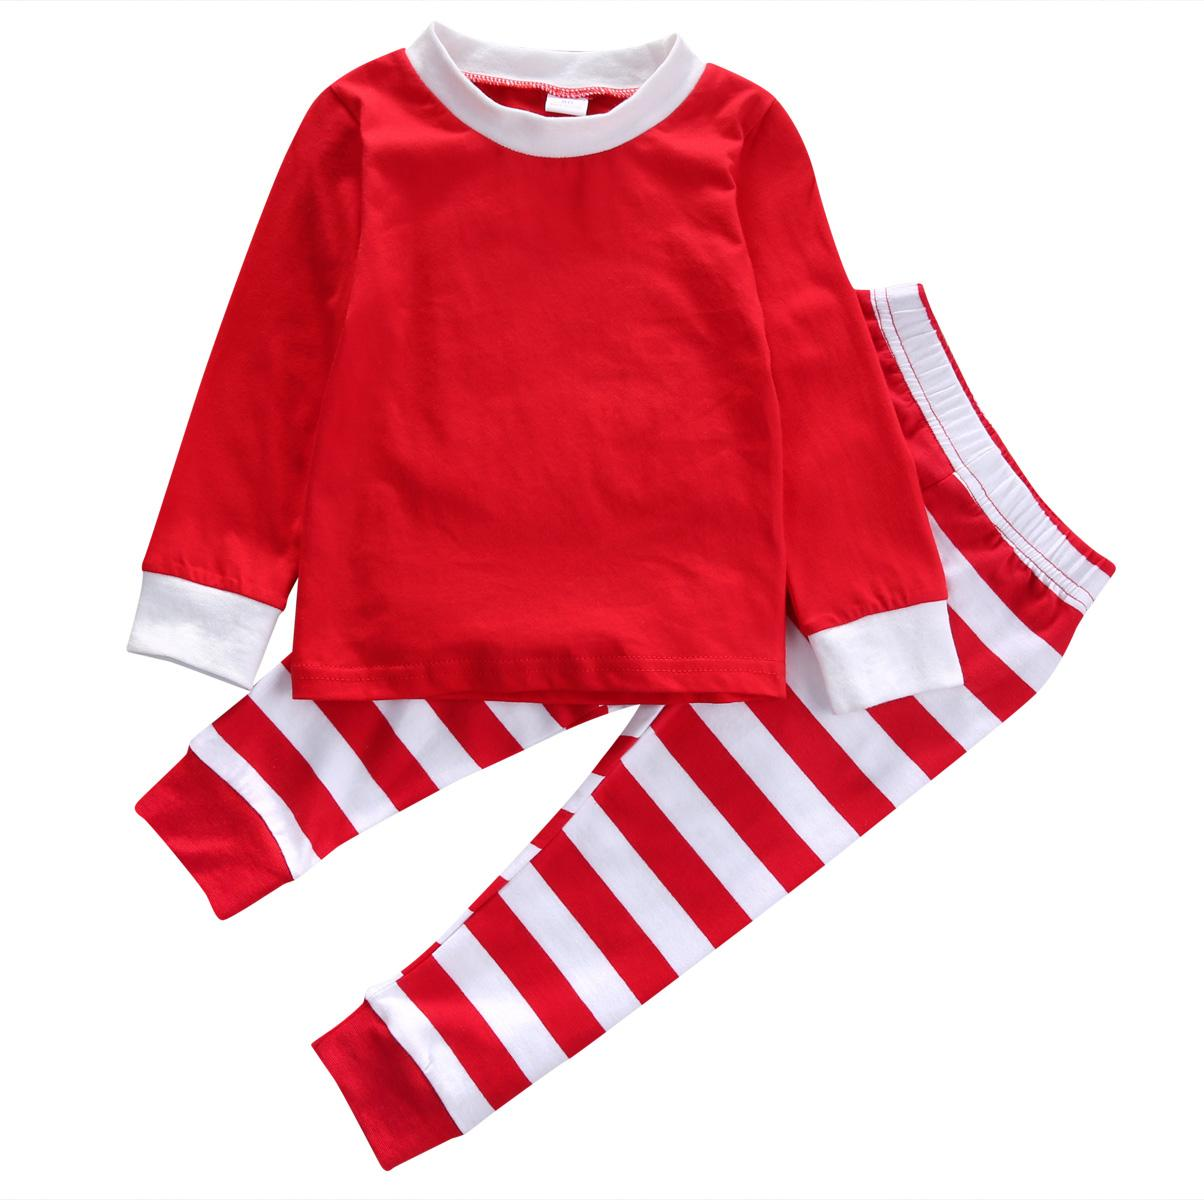 ffb393810 Christmas Pajama Sets Toddler Kids Baby Boy Girls Striped Outfits ...